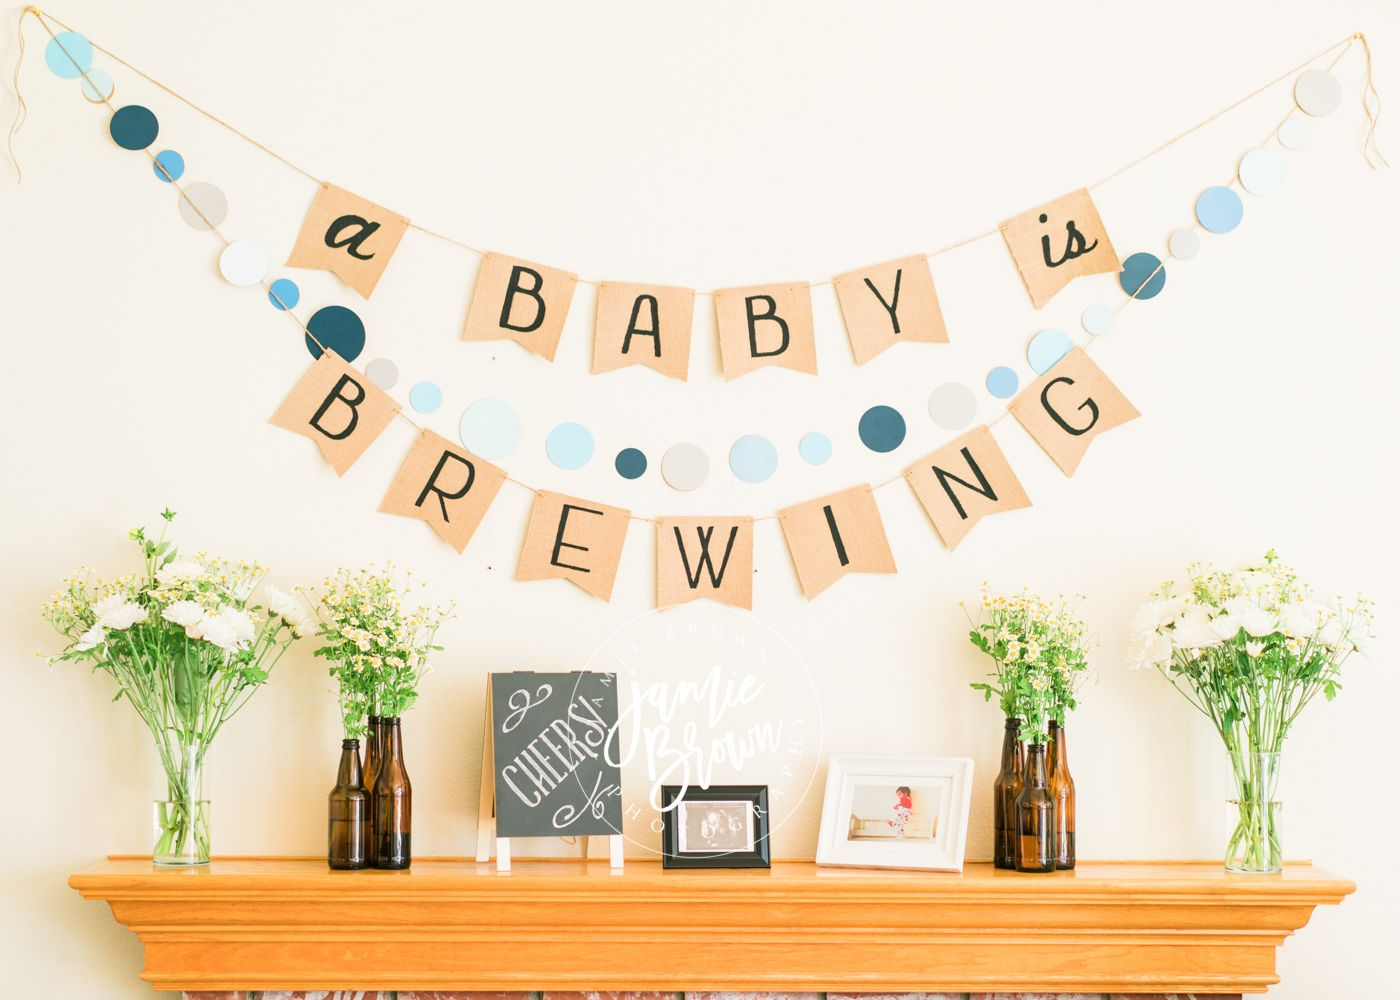 a baby is brewing baby shower ideas themes decor coed baby shower